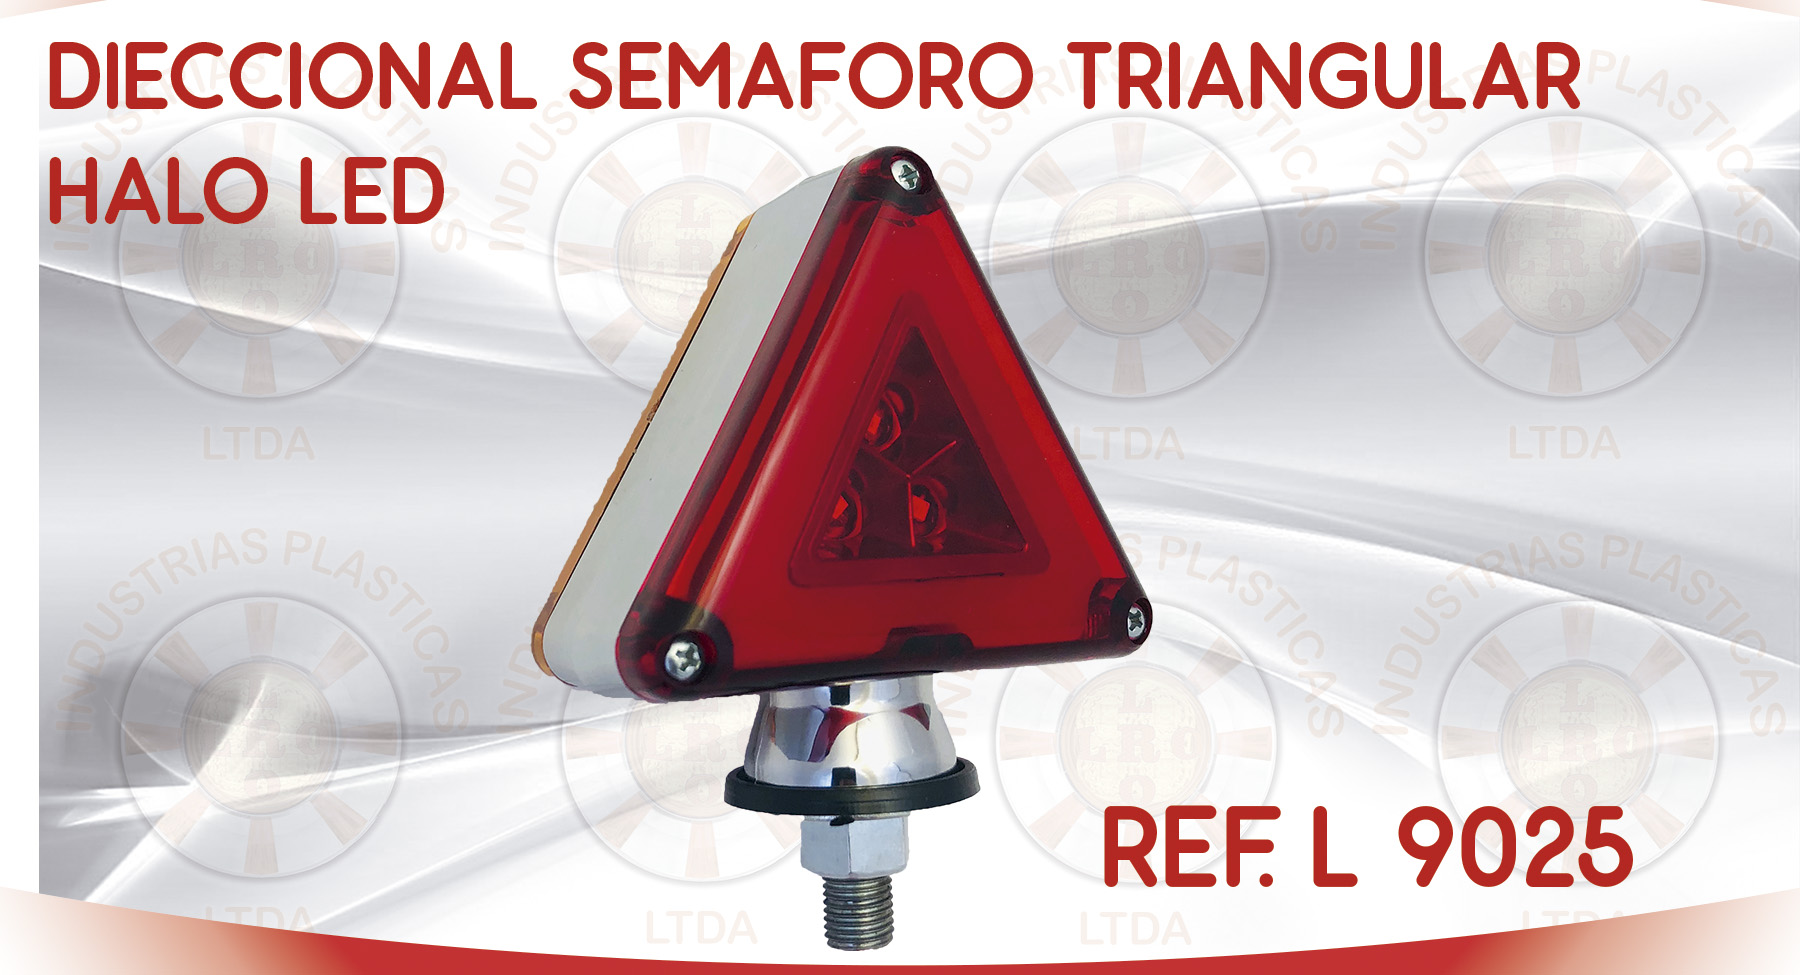 L 9025 DIRECCIONAL SEMAFORO TRIANGULAR HALO LED